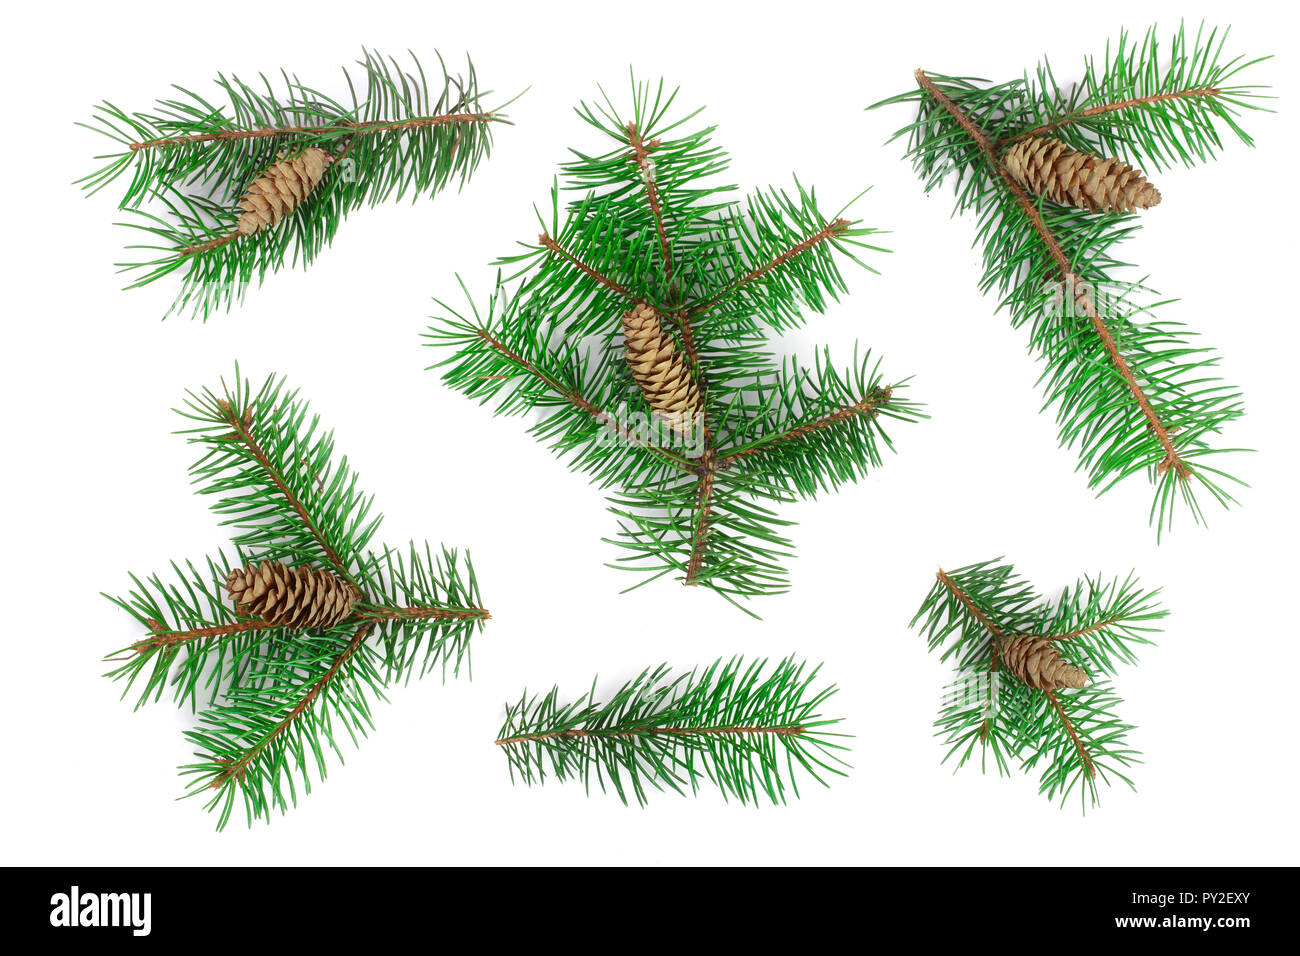 Fir tree branch with cones isolated on white background. Christmas background. Top view. - Stock Image